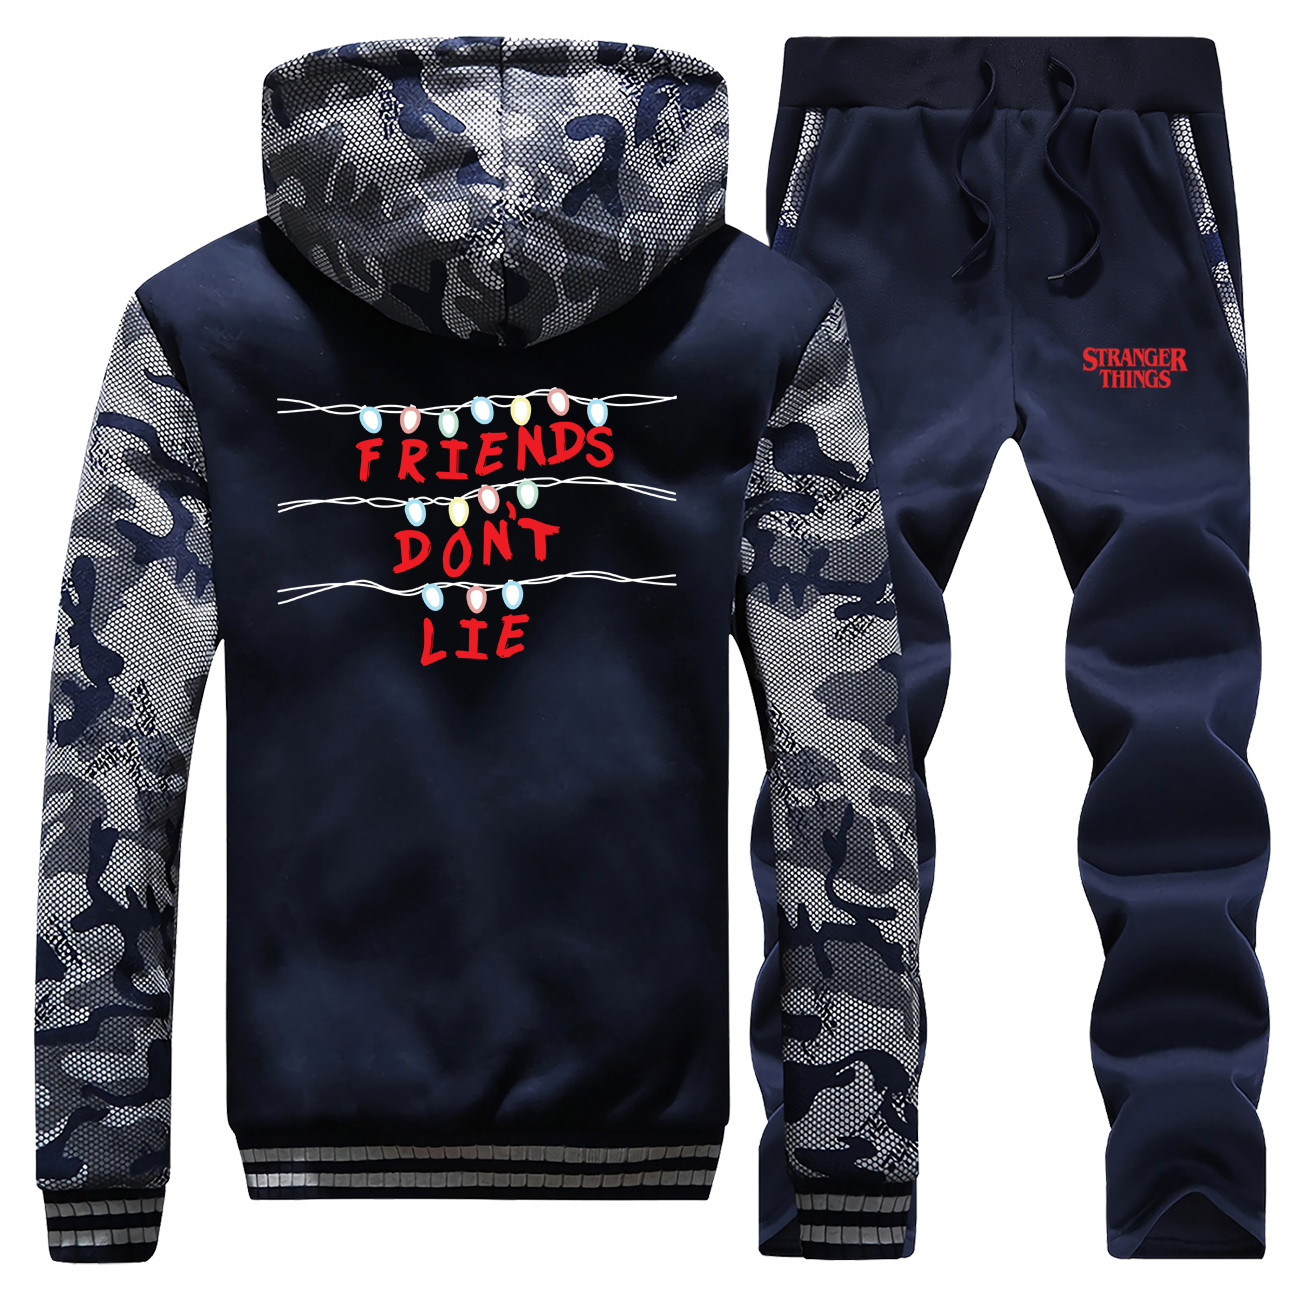 Stranger Things Vintage Print Winter Hot Sale Hooded Men Fashion Camouflage Coat Thick Suit Jaclets Sportswear+Pants 2 Piece Set